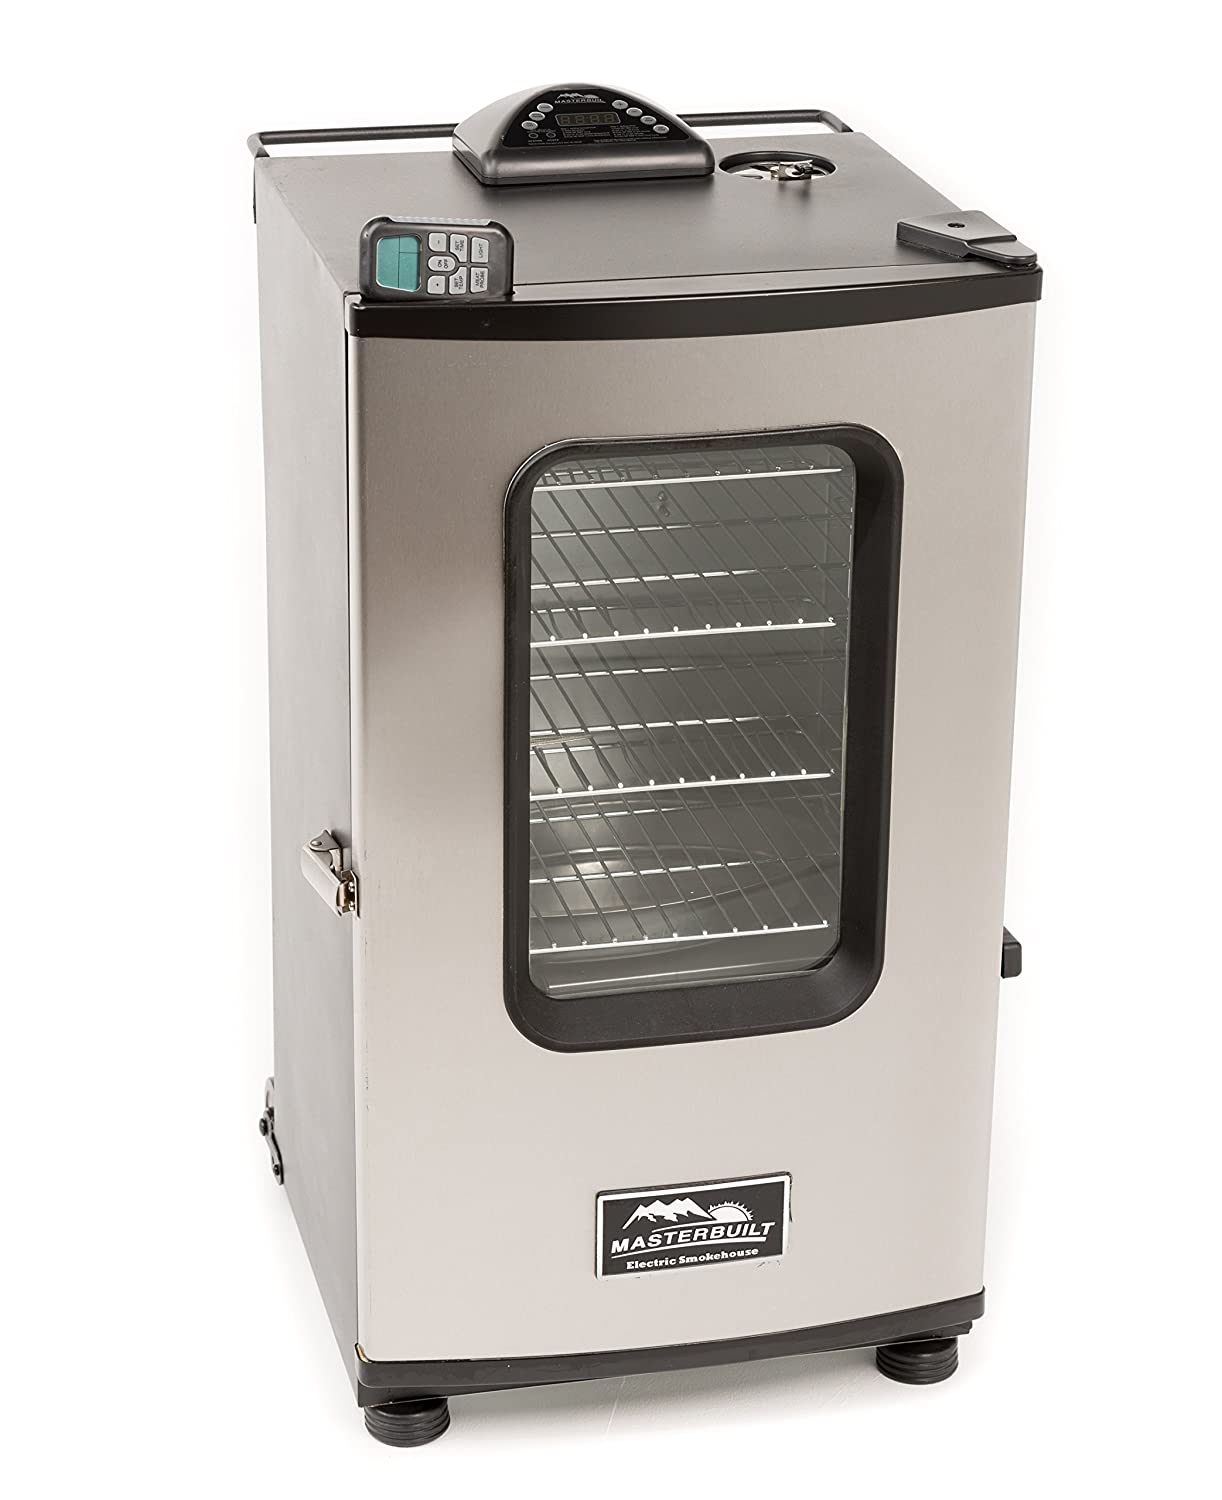 Top 10 Best Electric Meat Smokers (Reviews in 2019) 1